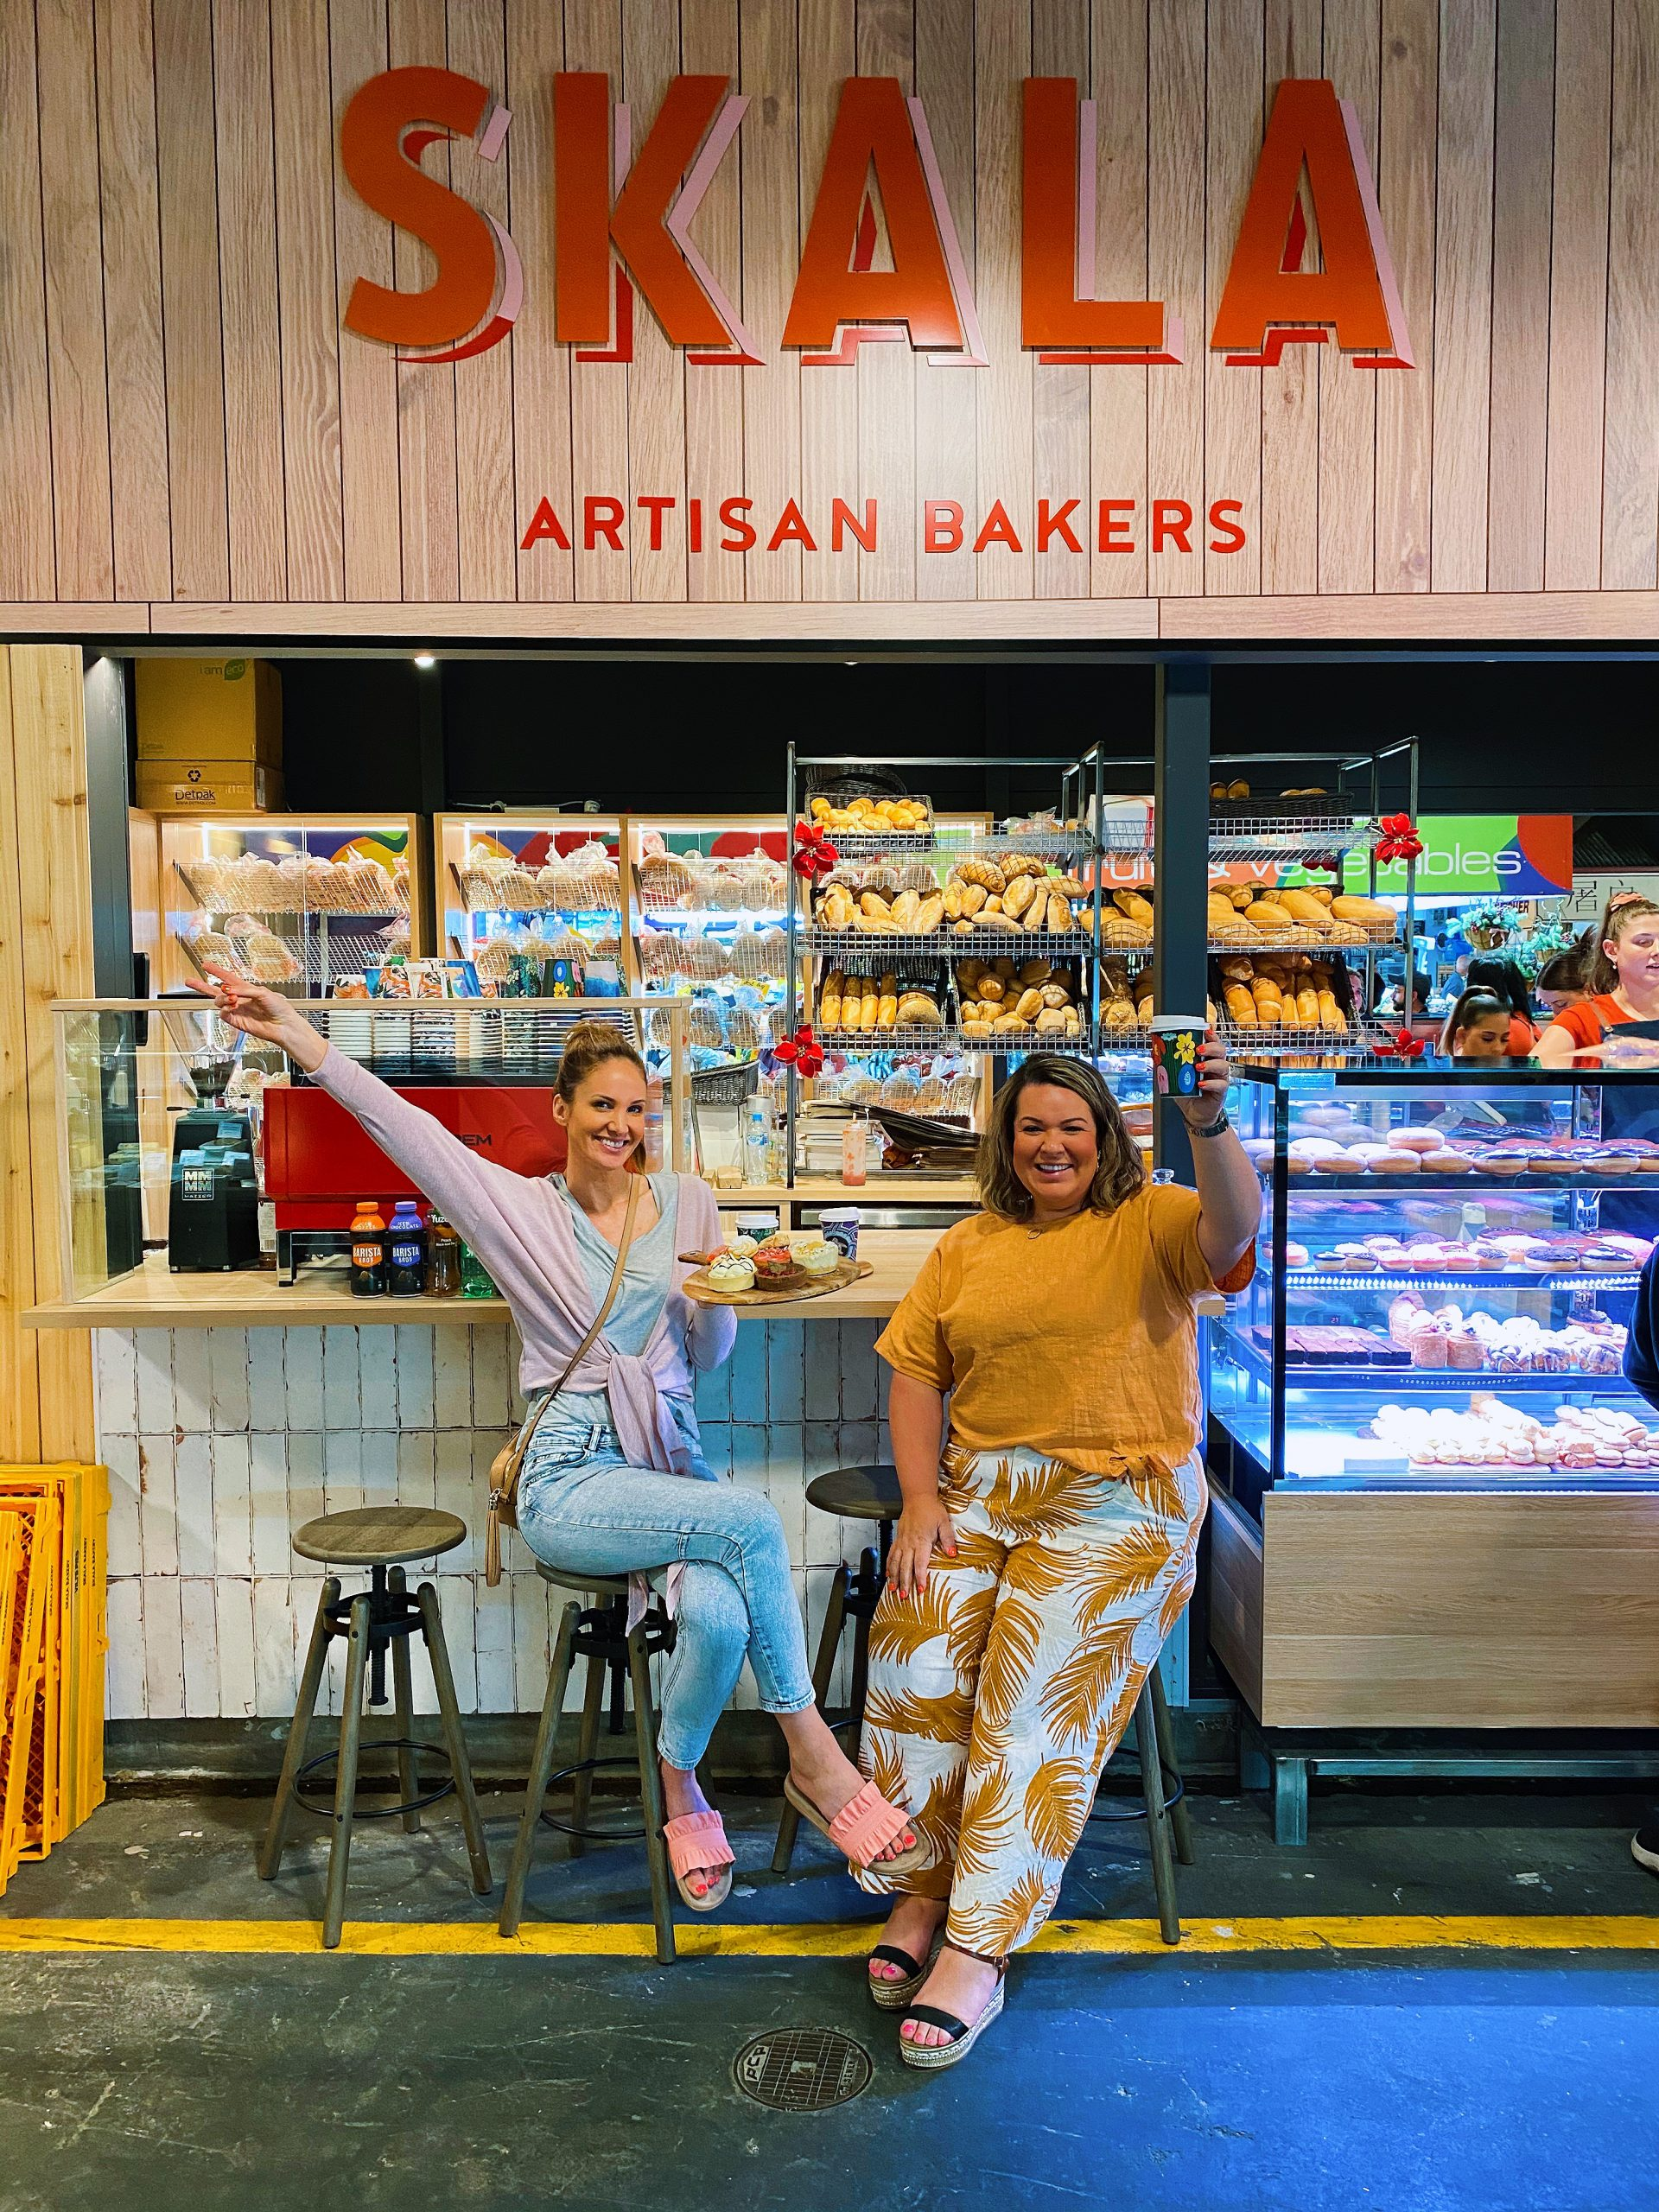 WIN 1 of 3 double passes to come and have lunch and drinks with us at Skala Bakery